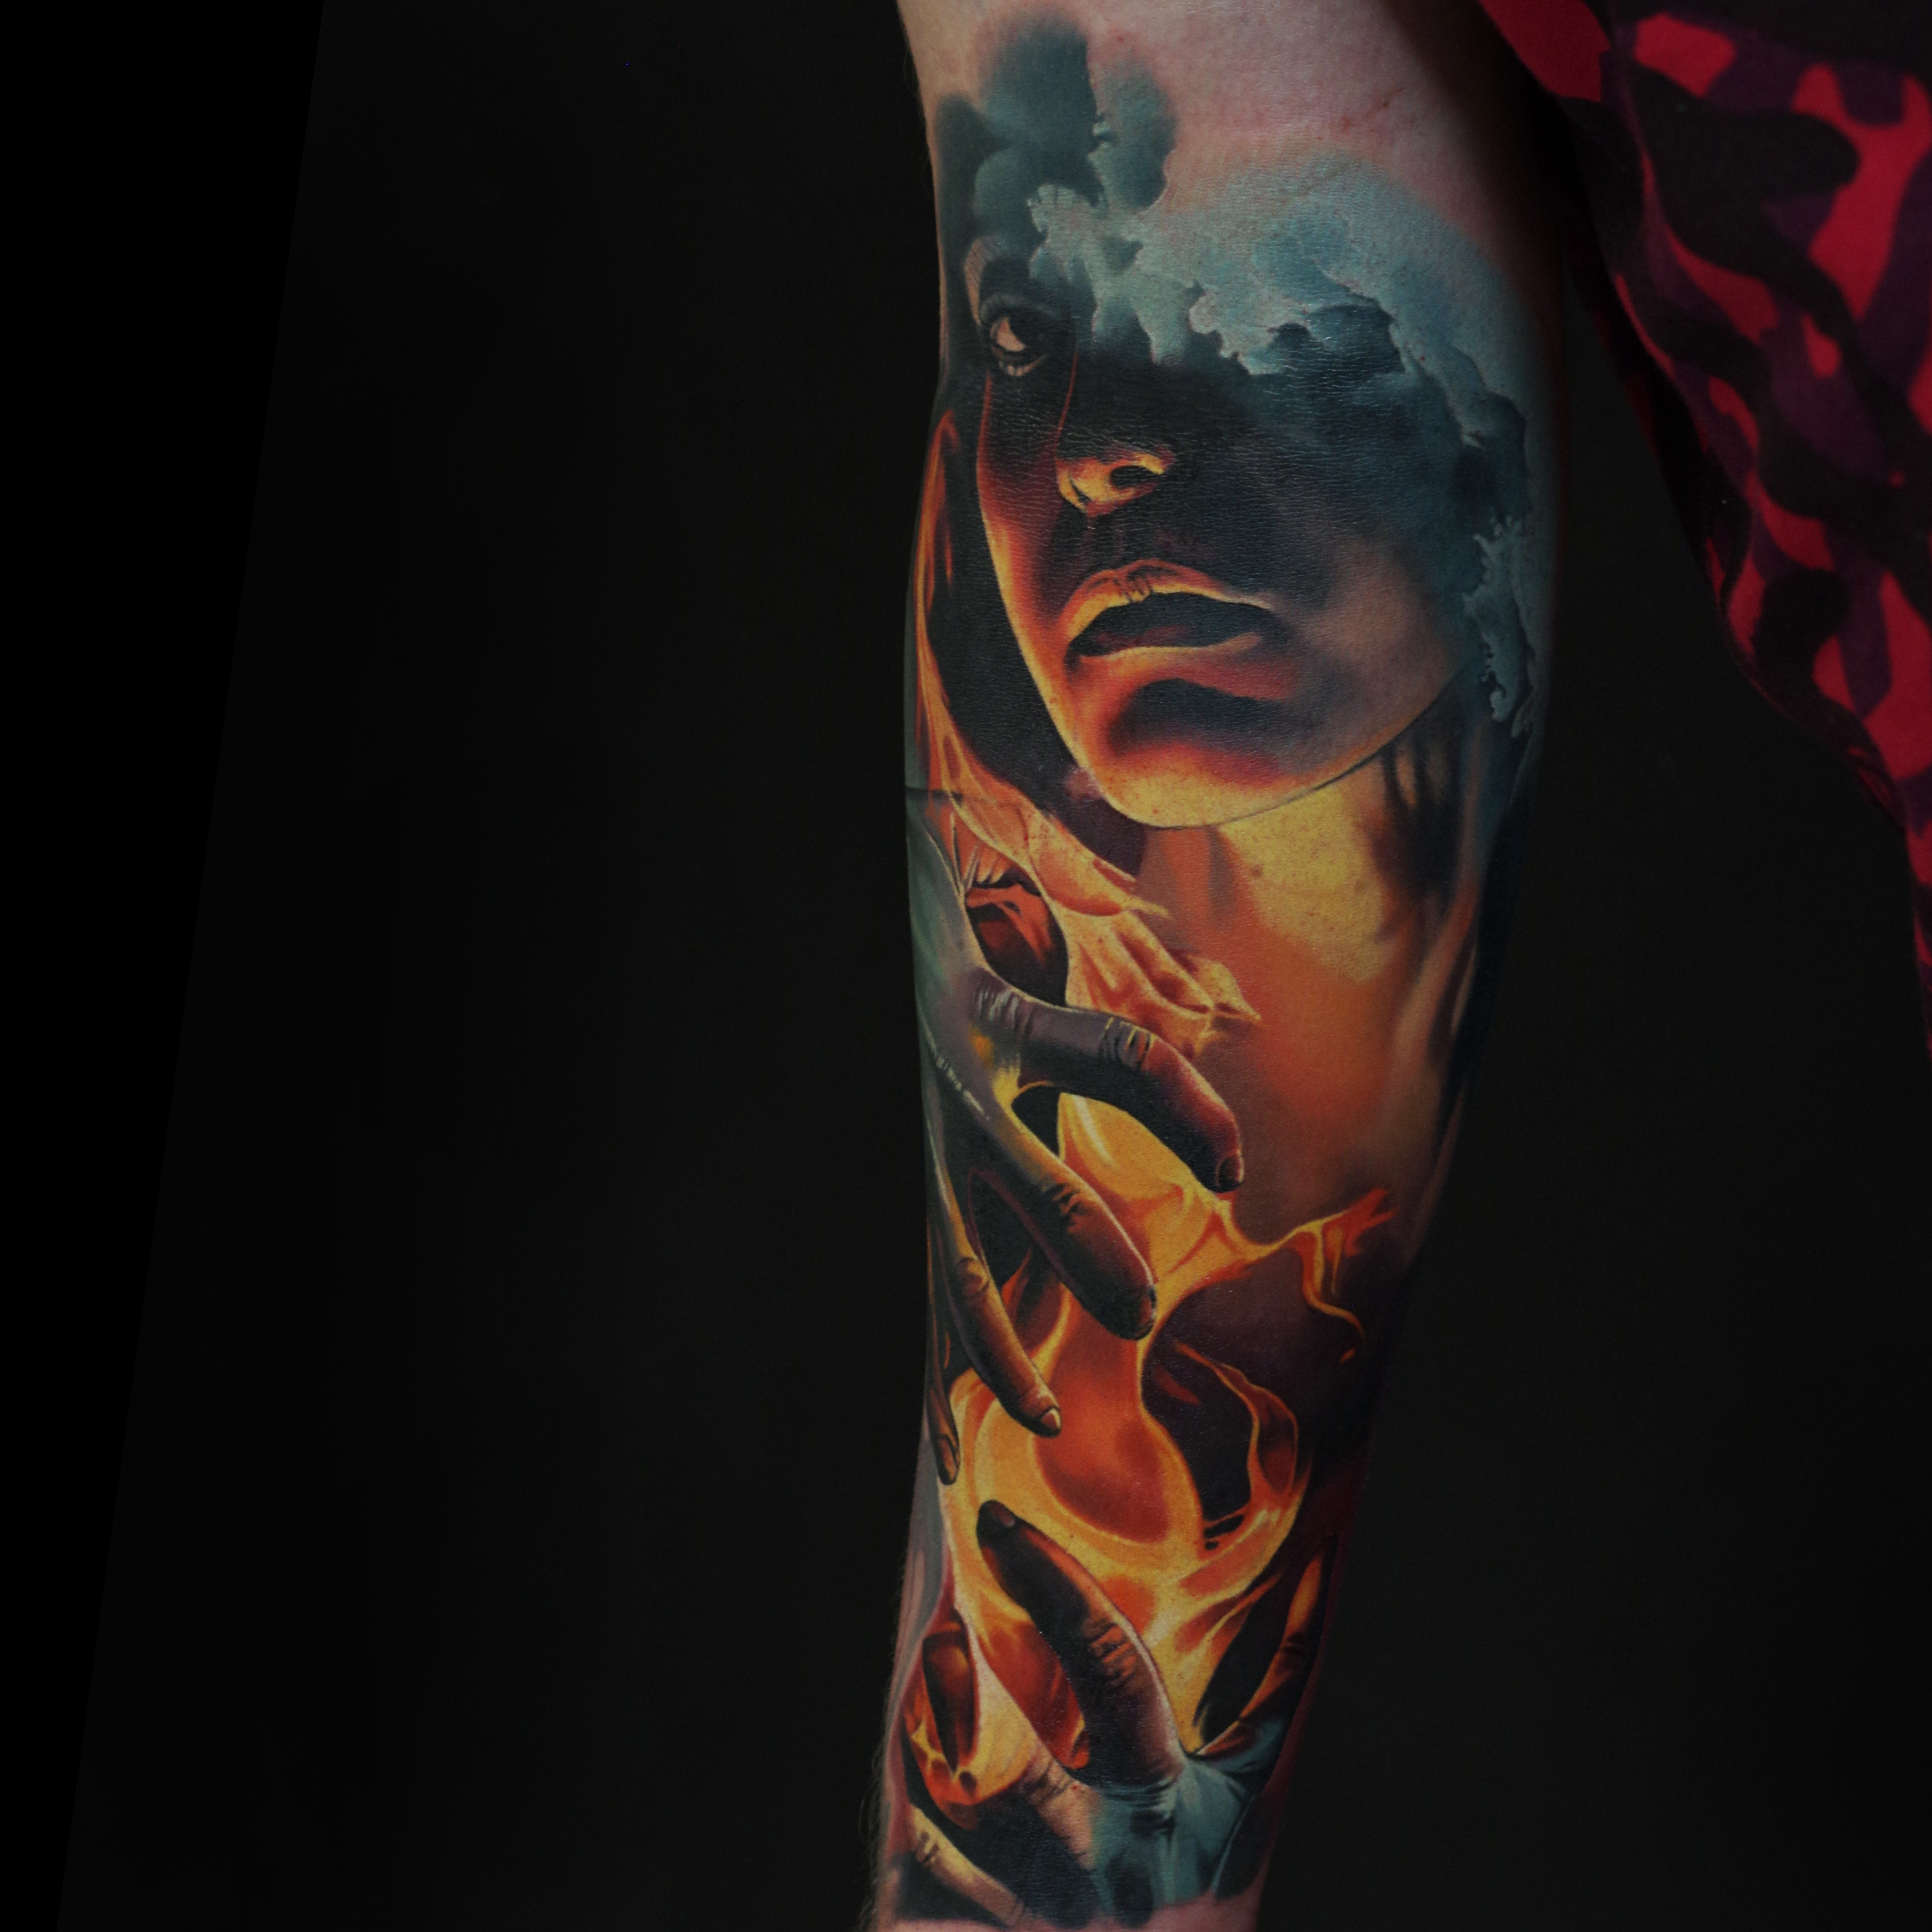 22a118f65 I have always wondered how, especially in terms of realism work, there's a  noticeable pattern: tattoo artists from Eastern Europe – Ukraine, Belarus,  ...